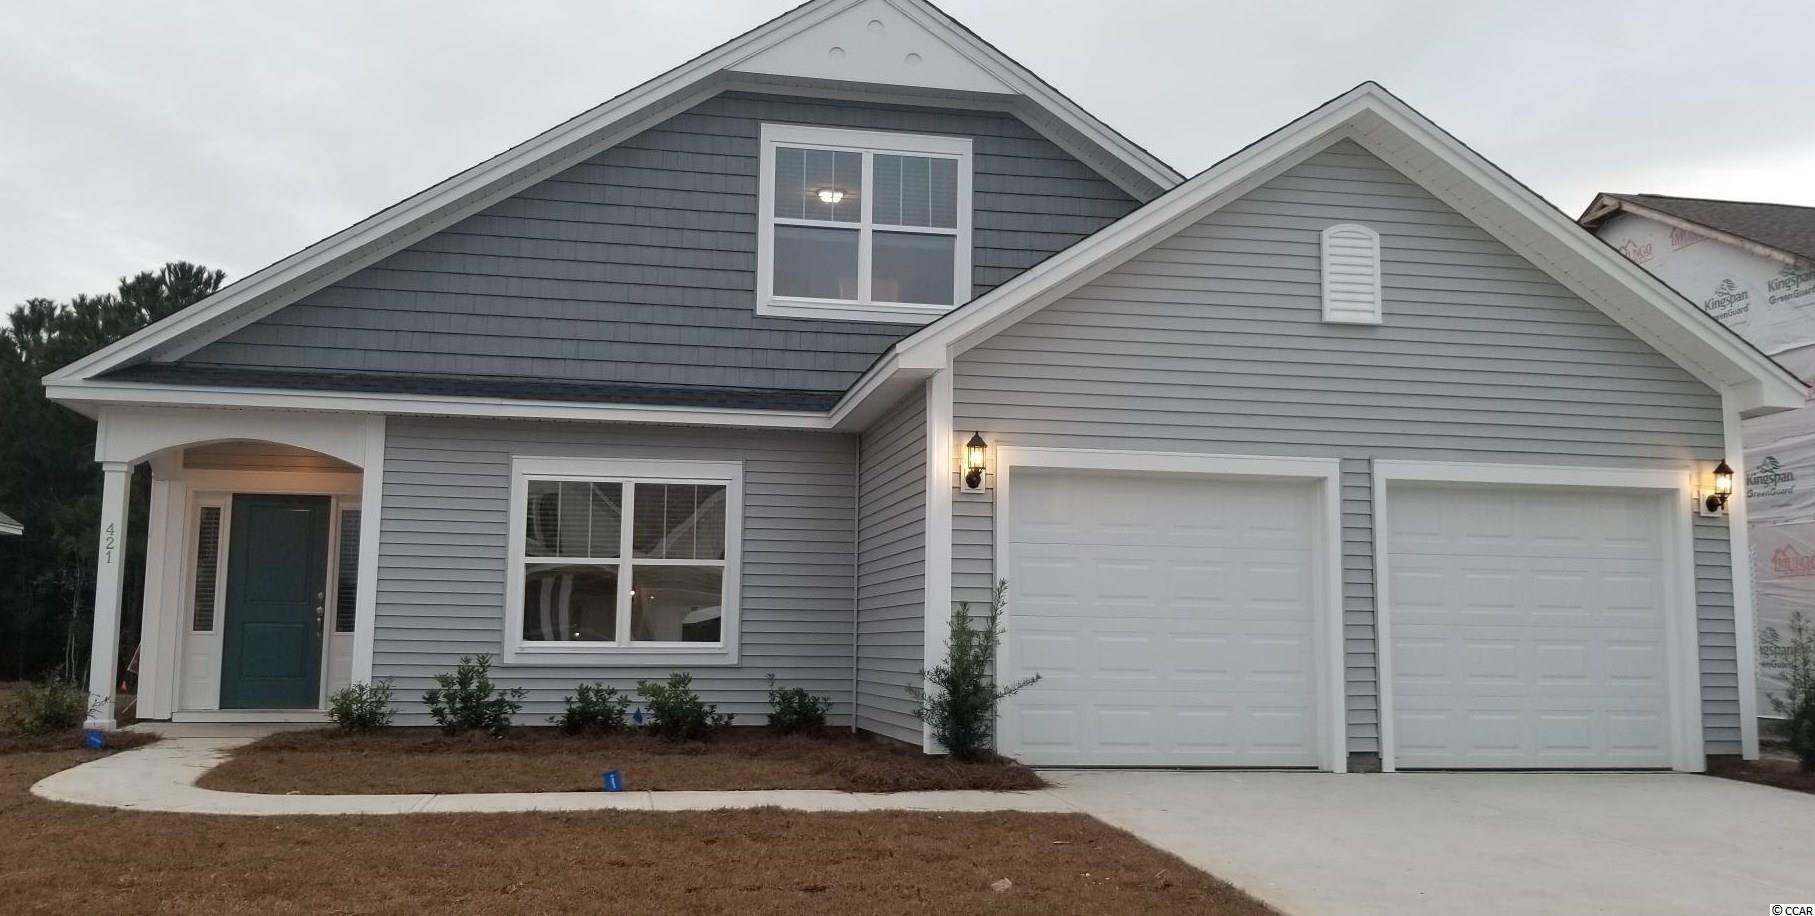 """This Jensen is under roof and in drywall tentatively completing in late December.   Located within the International Club golf course community in Murrell's Inlet, you'll be central to everything you need and close to so much that you'll want to go and do!! Enjoy life living near the beach, The Marsh Walk, Brookgreen Gardens and several golf courses in this well appointed, affordable home in Murrell's Inlet. Evans Park is so conveniently located within the International Club making it just a few minutes to 3 grocery stores, 5-10 minutes to oodles of restaurants, 10 minutes to Garden City beach and the Marsh Walk with tons of food and great music!!   The Jensen 2 story home is so open and airy! Walk into your 23' long family room with decorative painted beams across the ceiling! Walk under the wide arch enter your spacious kitchen. Your expansive island with furniture like legs is terrific for cooking and entertaining! Walk out to your included 16' x 10' covered rear porch now opens up the outdoor living for you too!! We have added the porch fireplace with full height stone surround for extended use in the cooler months! Primary Suite is tucked down the hall on the main floor!! Ceramic tiled floor and separate vanities in your bathroom! We've added the 60"""" x 42"""" tiled shower walls for added luxury!  We've added the office with French glass doors at the front of the home so you can work from home!! But you could hang a chandelier in there and use it as your formal dining room or whatever you want it to be!! With the 2483 Heated sq ft, you'll have plenty of room to entertain in the large family room, spacious kitchen and dining area! Two bedrooms upstairs and a full bath plus a loft in between would be a private area for family or guests or a great work out area! Extra storage under the staircase for all of that extra stuff we have. The kitchen will feature the new renovation TV popular charcoal colored Shaker Style cabinets with white quartz counter tops and white til"""